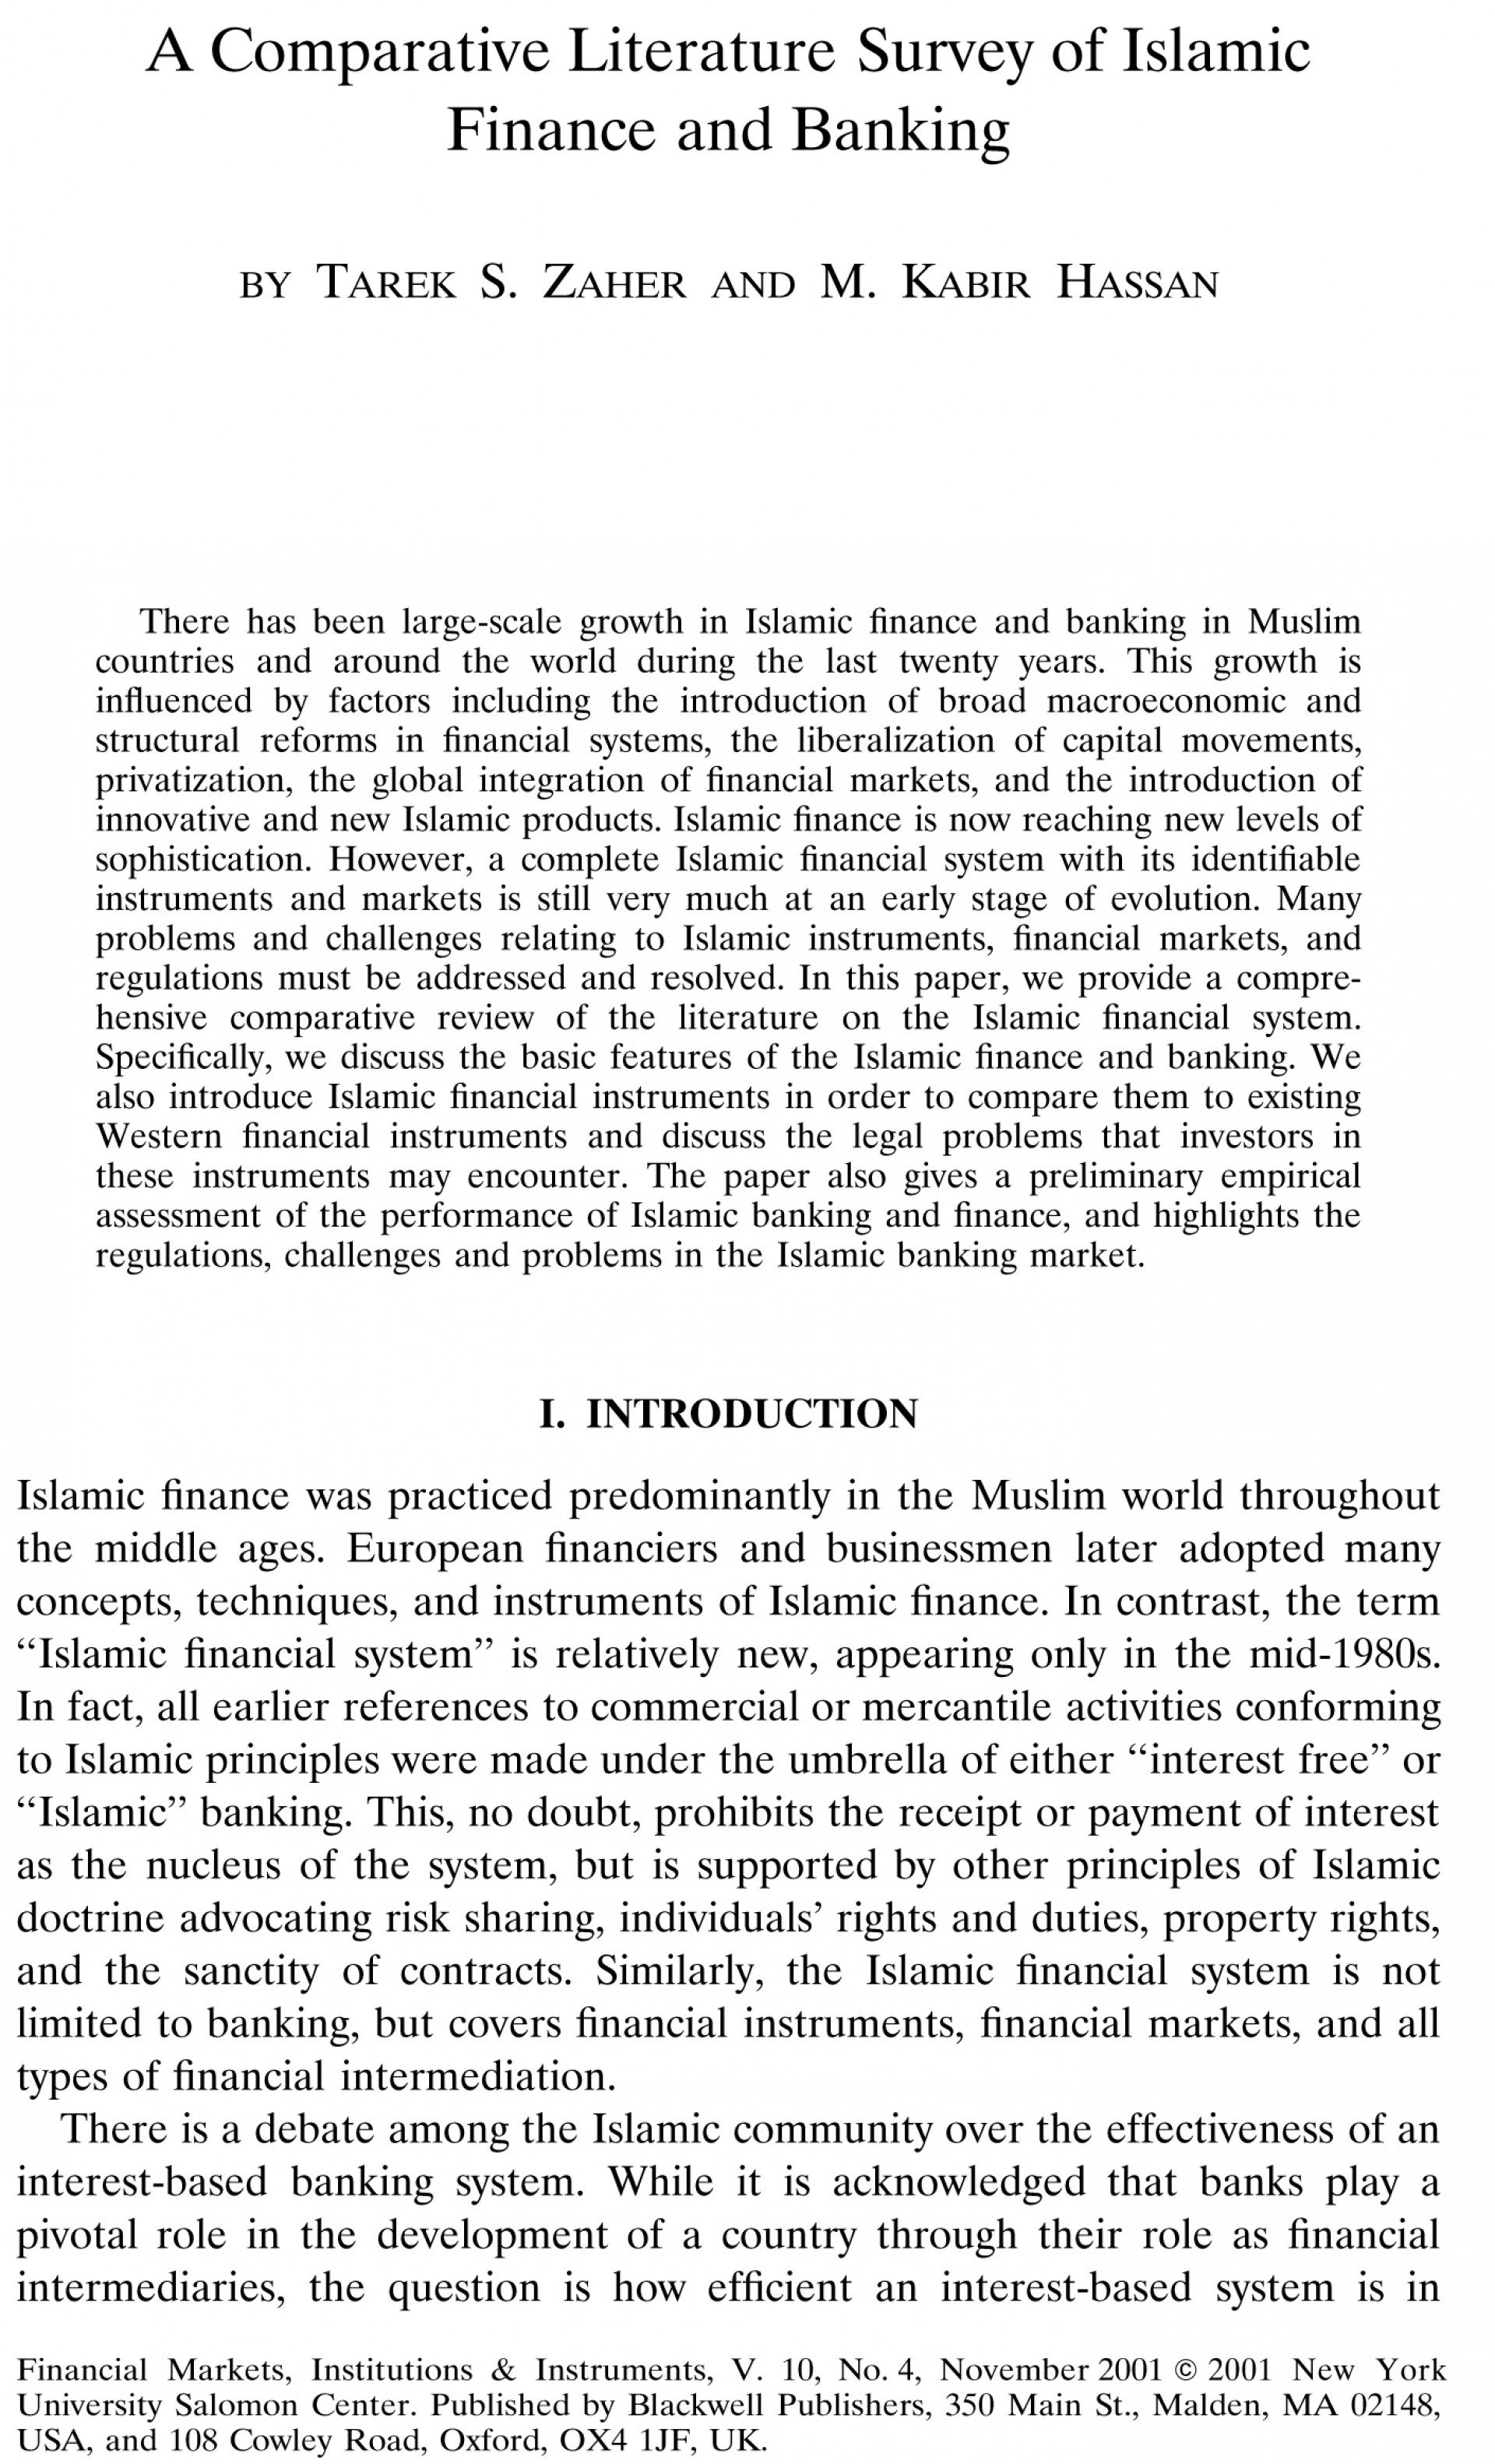 013 Literature Research Paper Help Example Of An Outline For Striking A Literary 1920